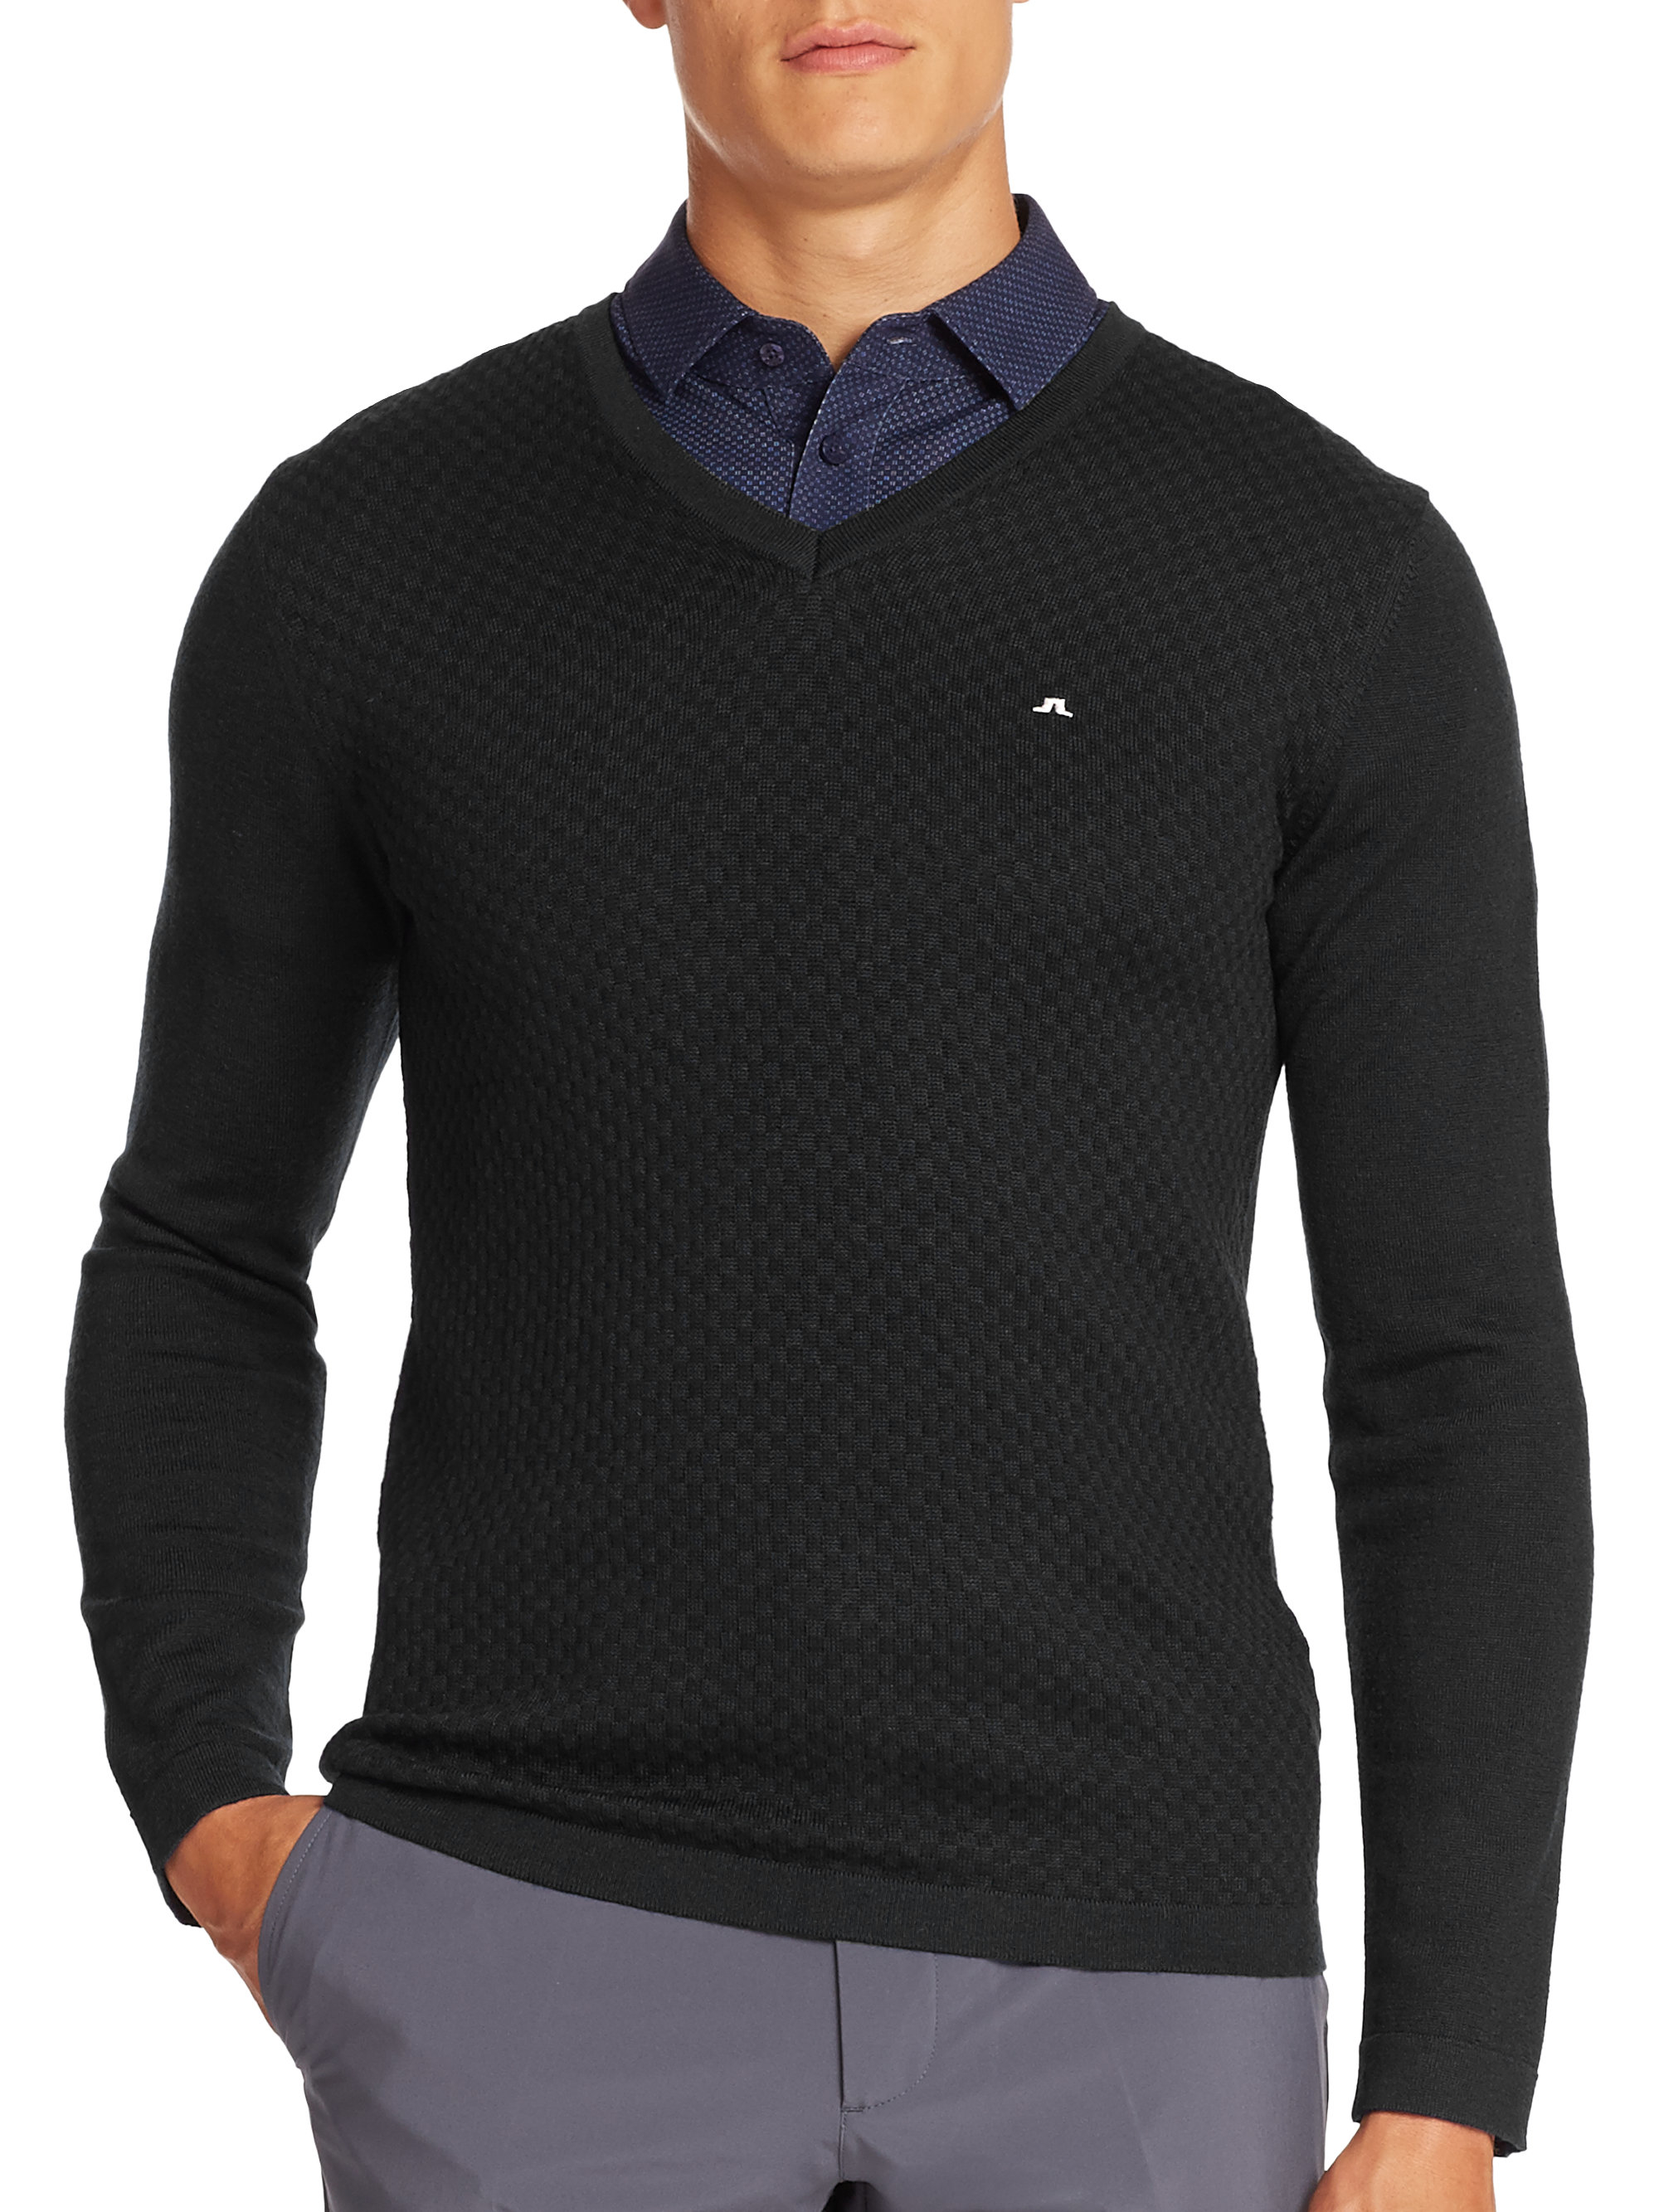 J.lindeberg Louis V-neck Pullover Sweater in Black for Men | Lyst